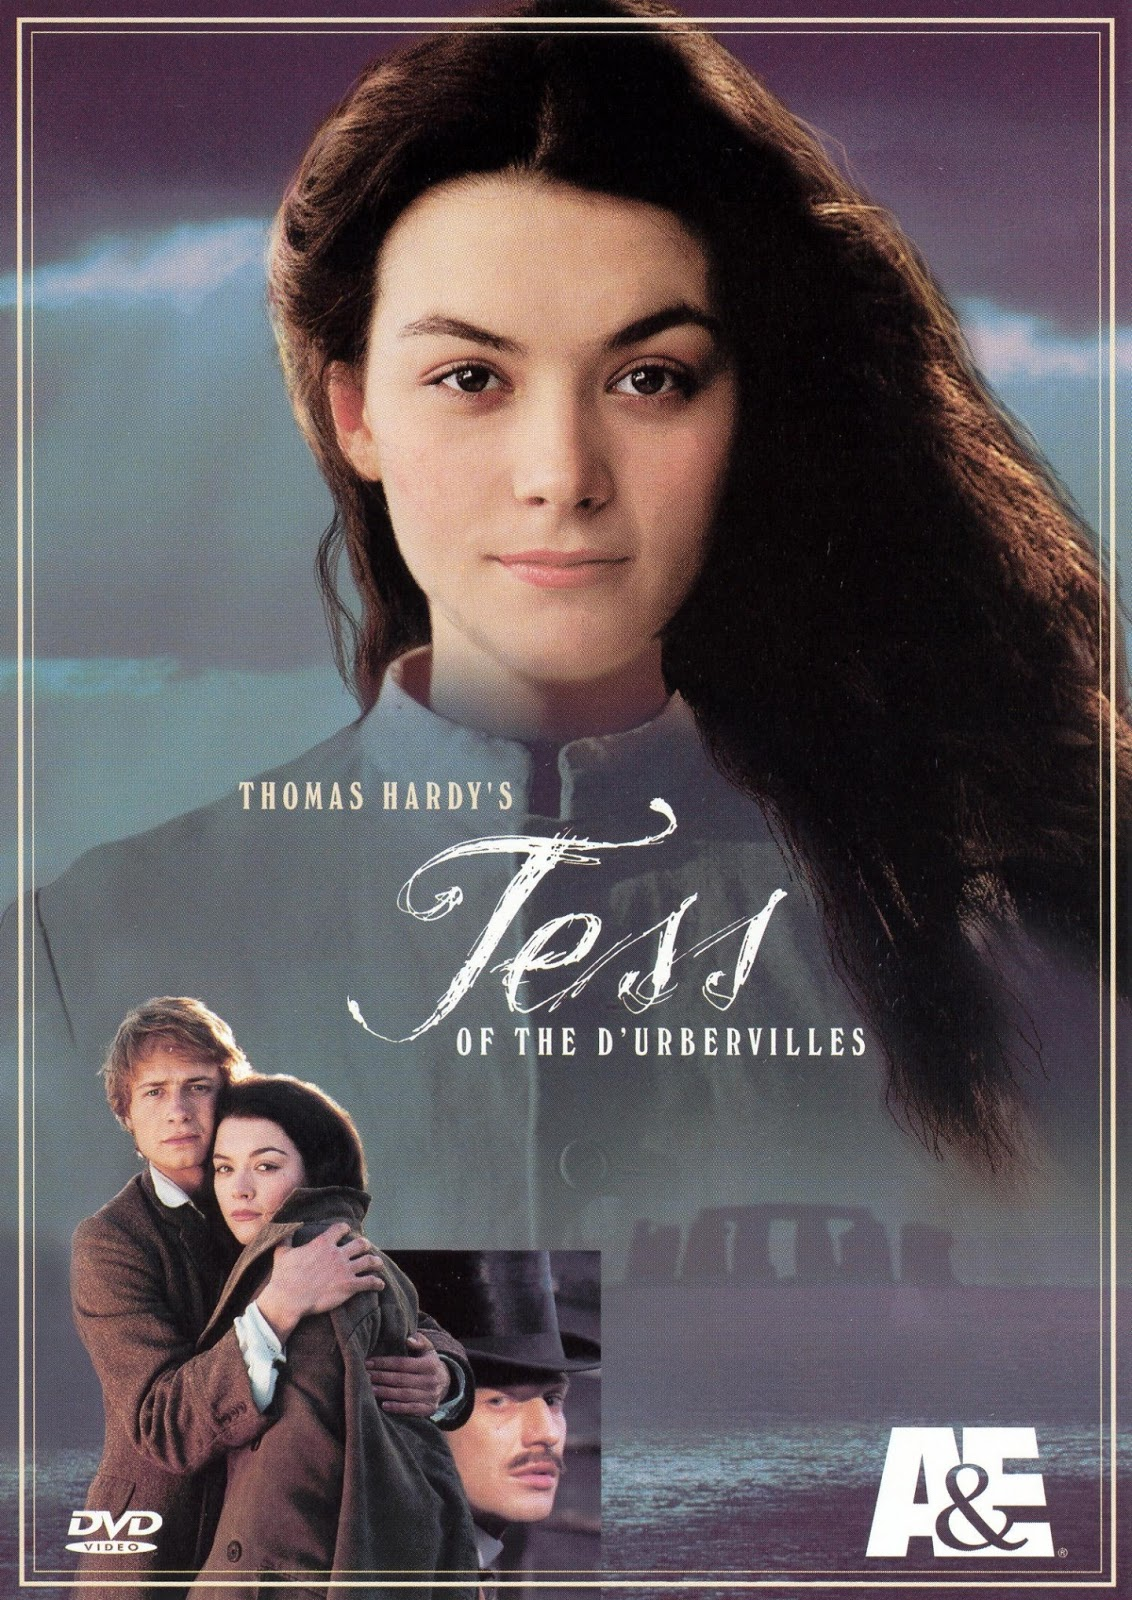 the quintessential justine waddell blog  tess of the d